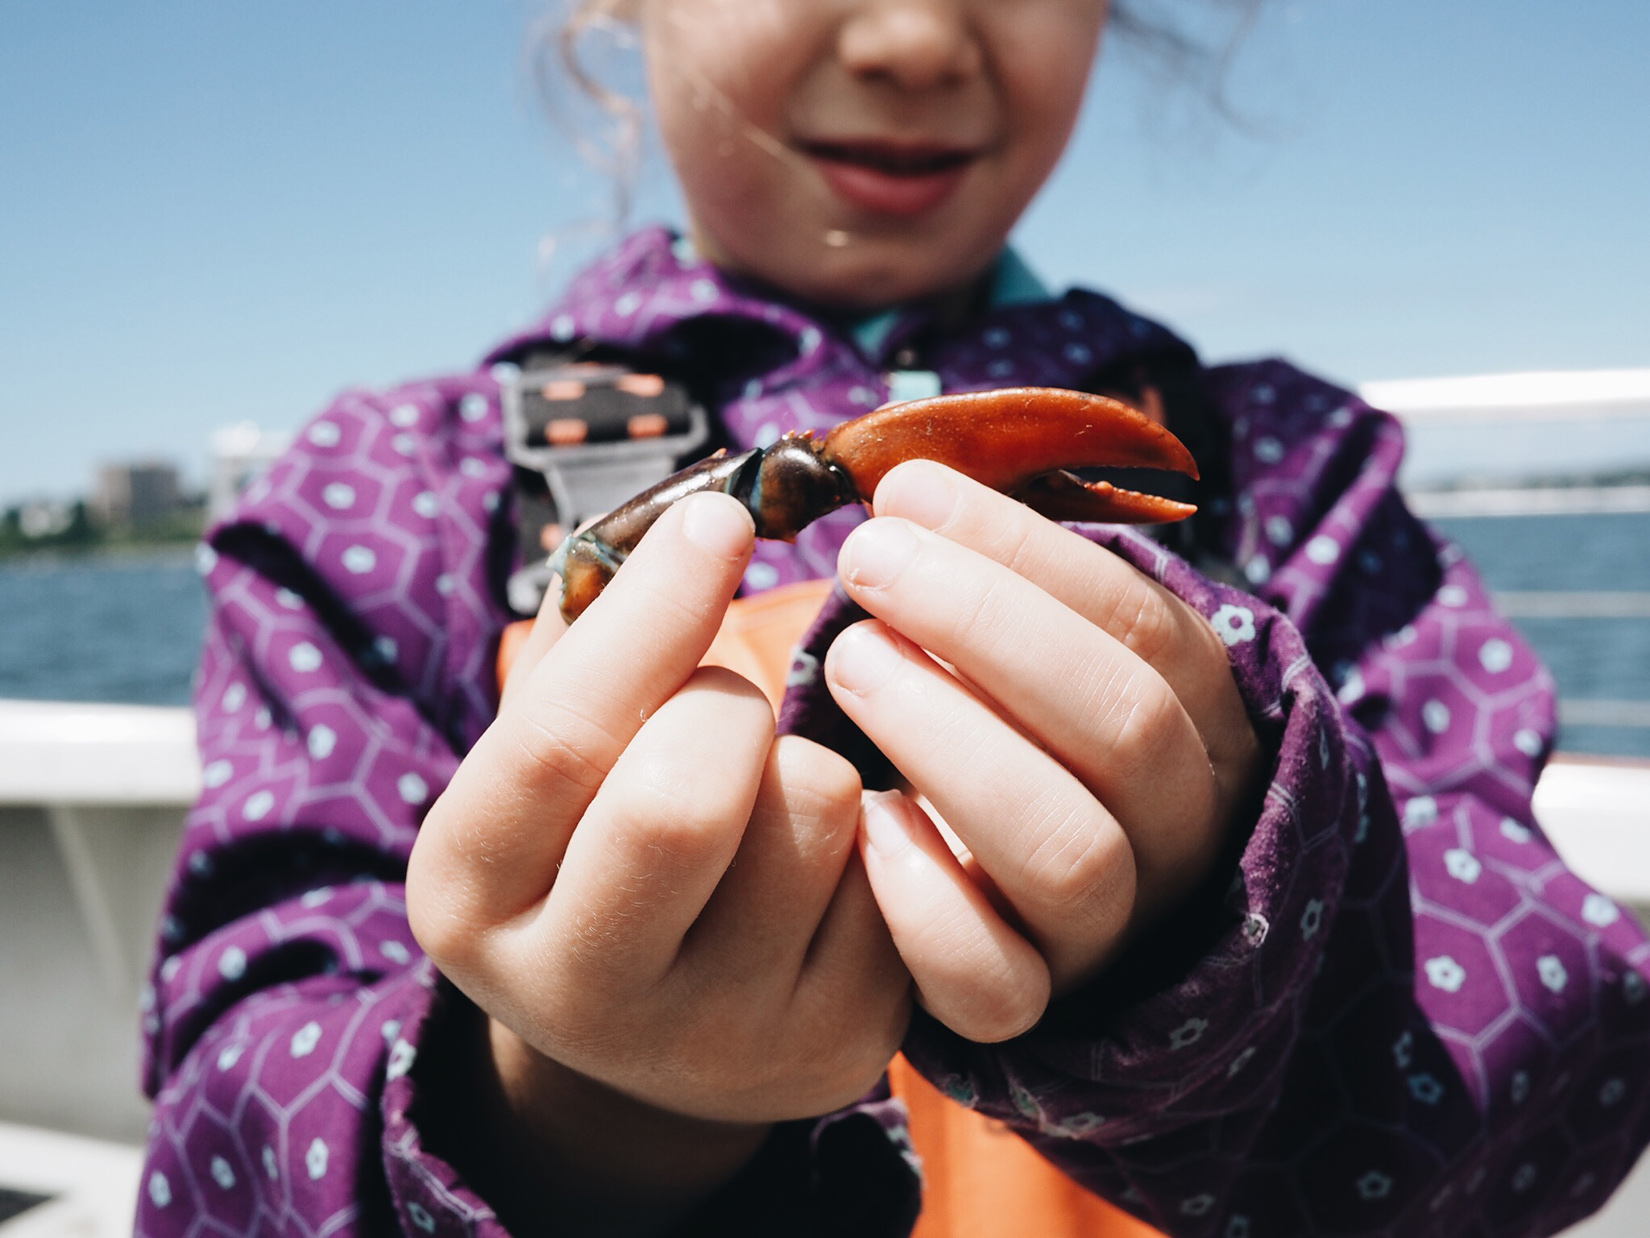 {No lobsters, but one little girl was so excited to find a claw!}